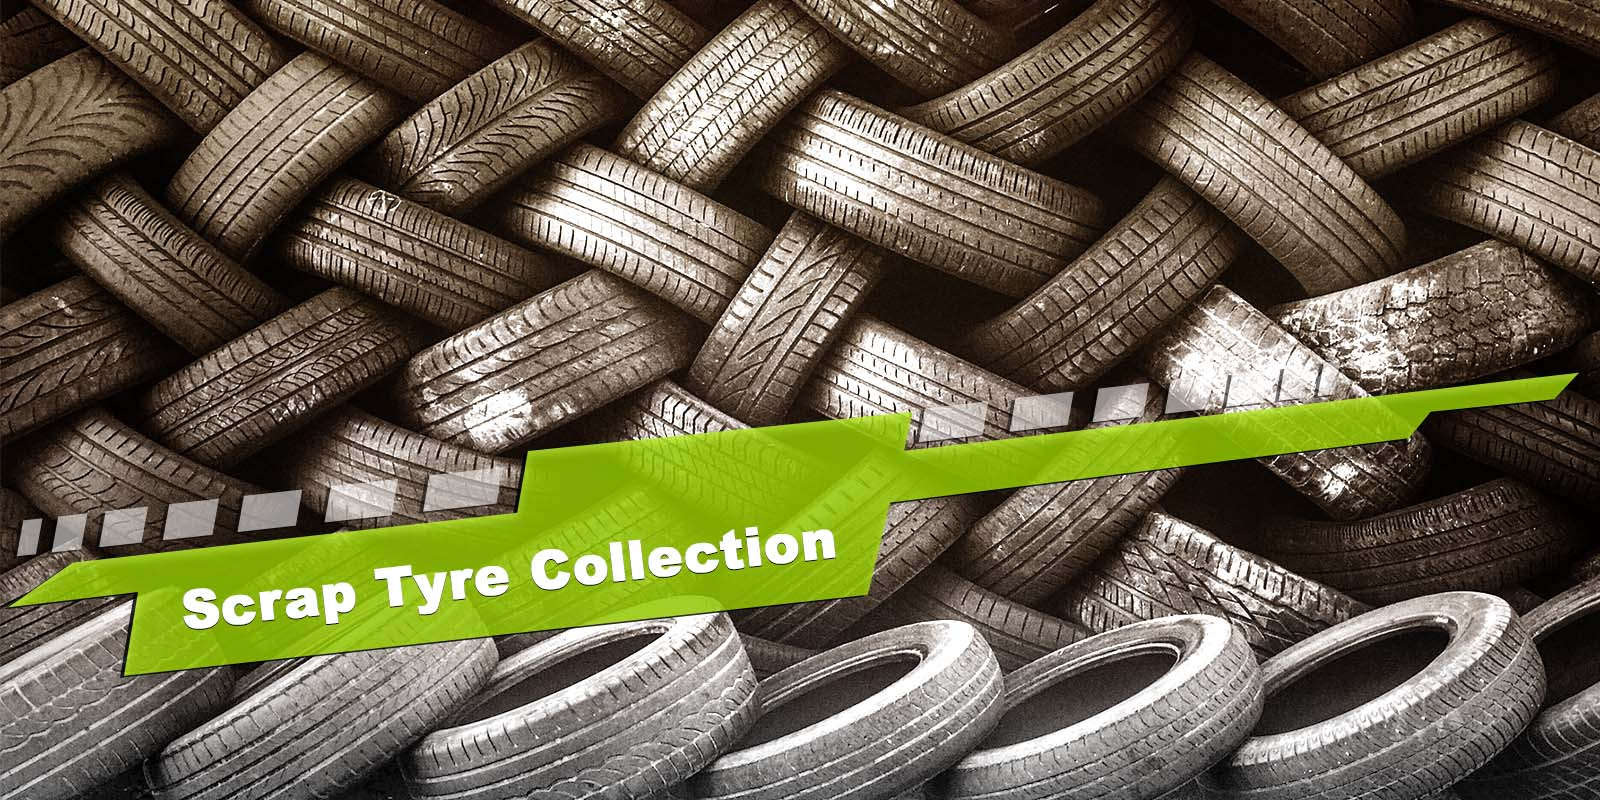 Scrap Tyre Collections